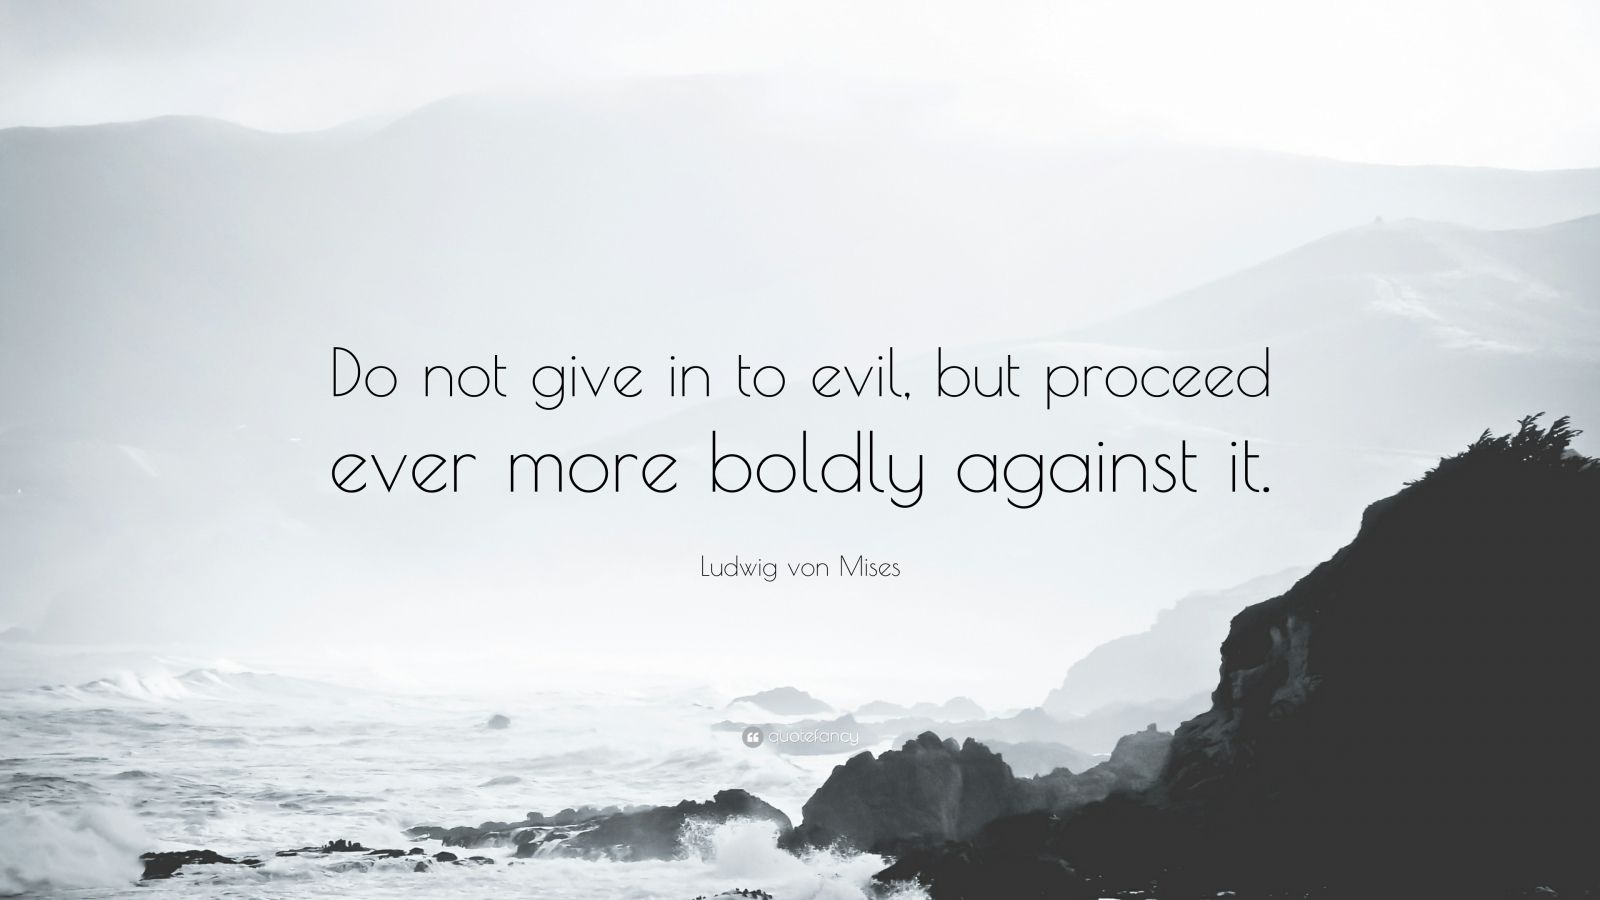 """Ludwig von Mises Quote: """"Do not give in to evil, but proceed ever more boldly against it."""""""